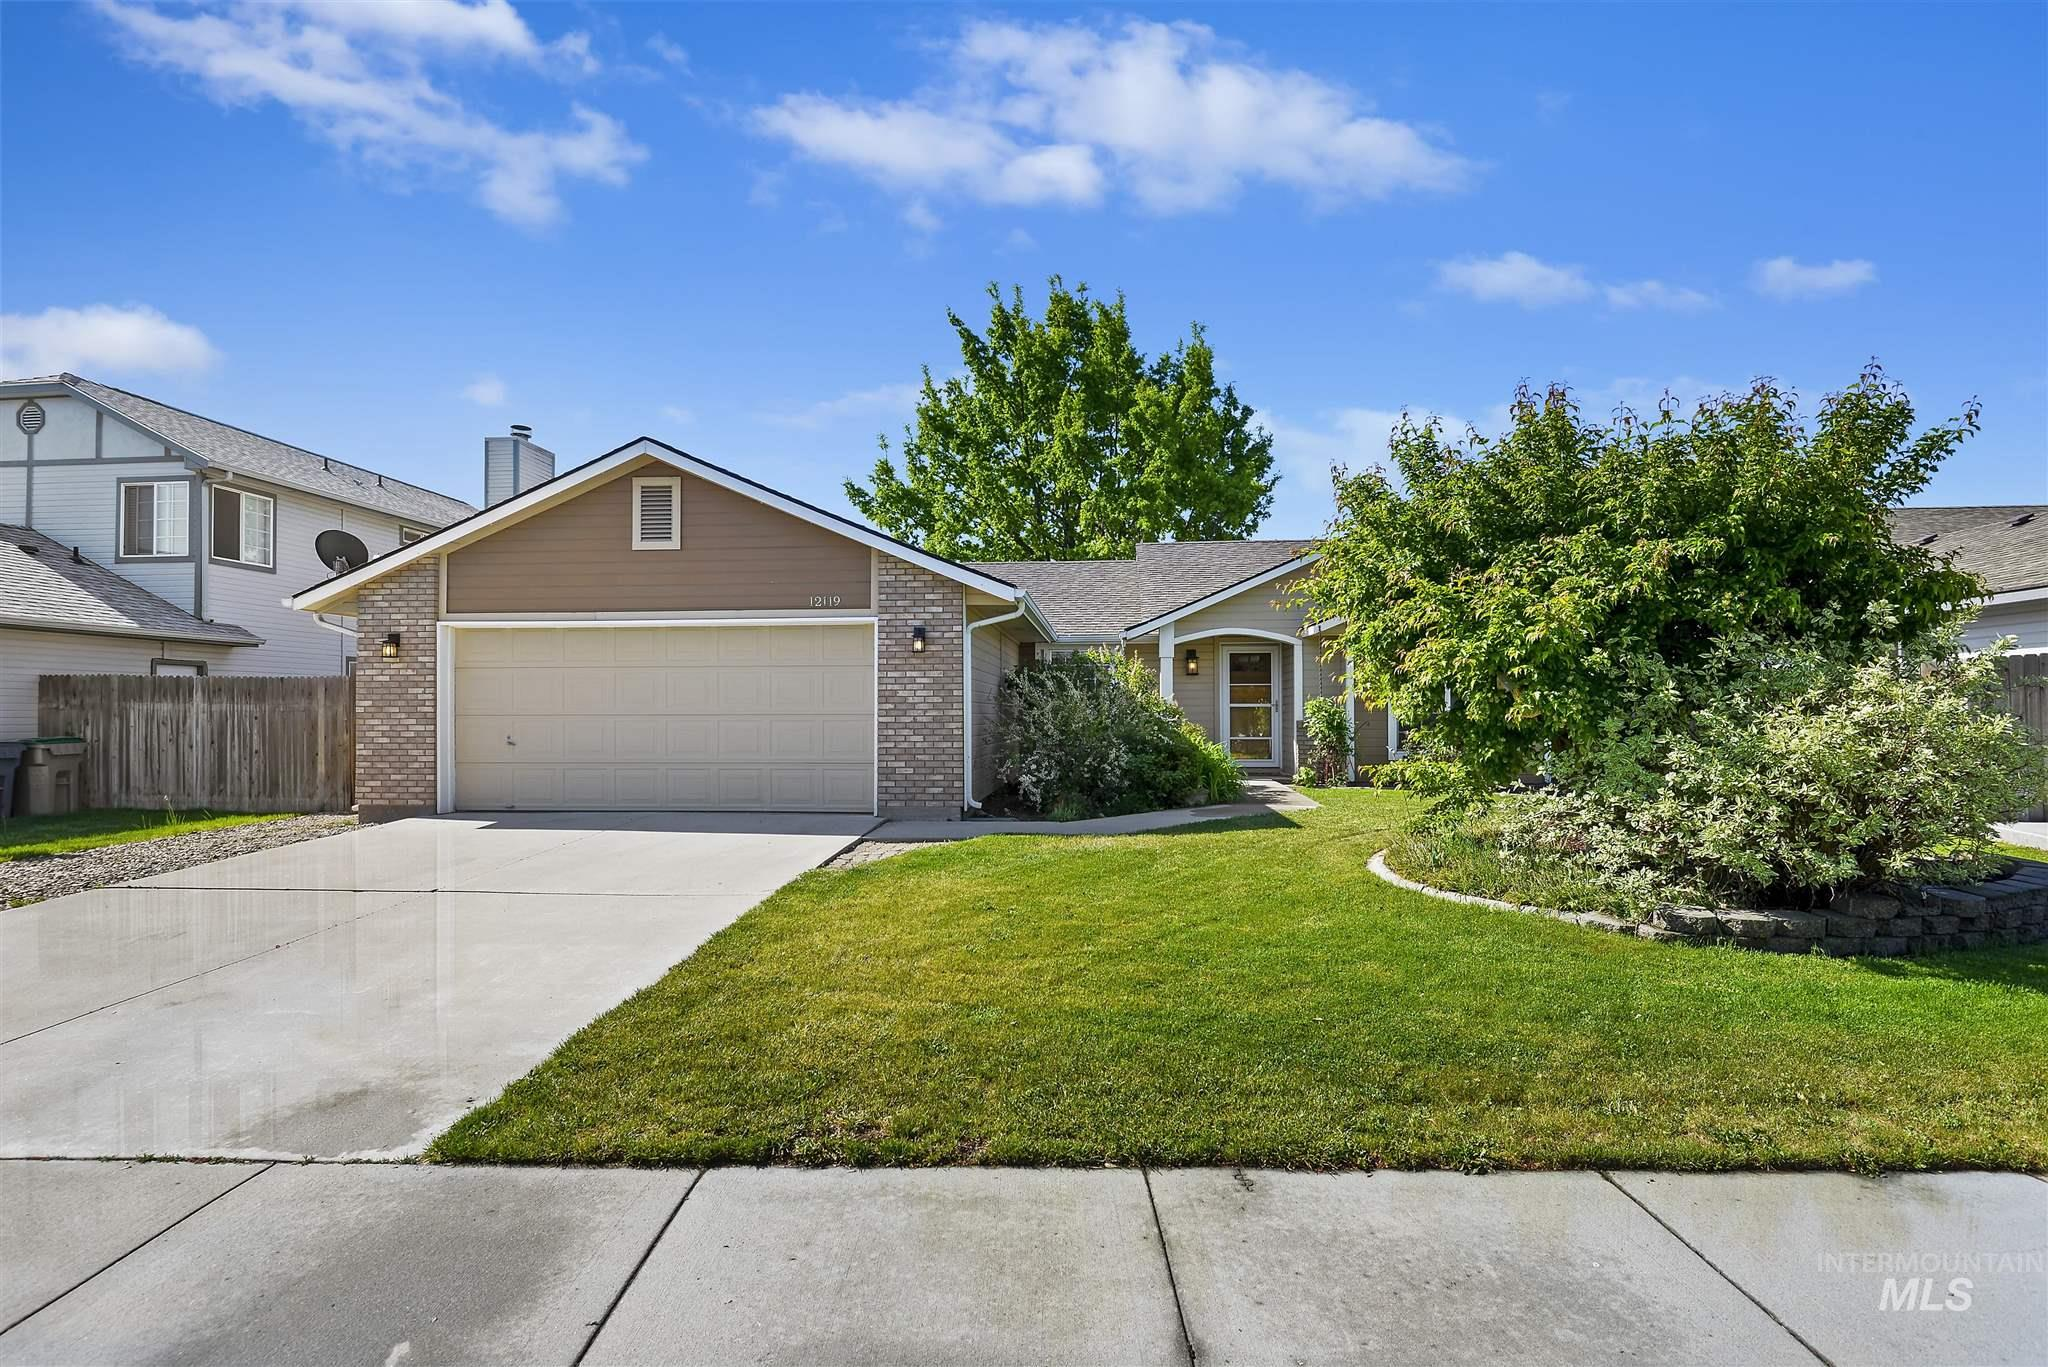 12119 W Mesquite Dr Property Photo - Boise, ID real estate listing